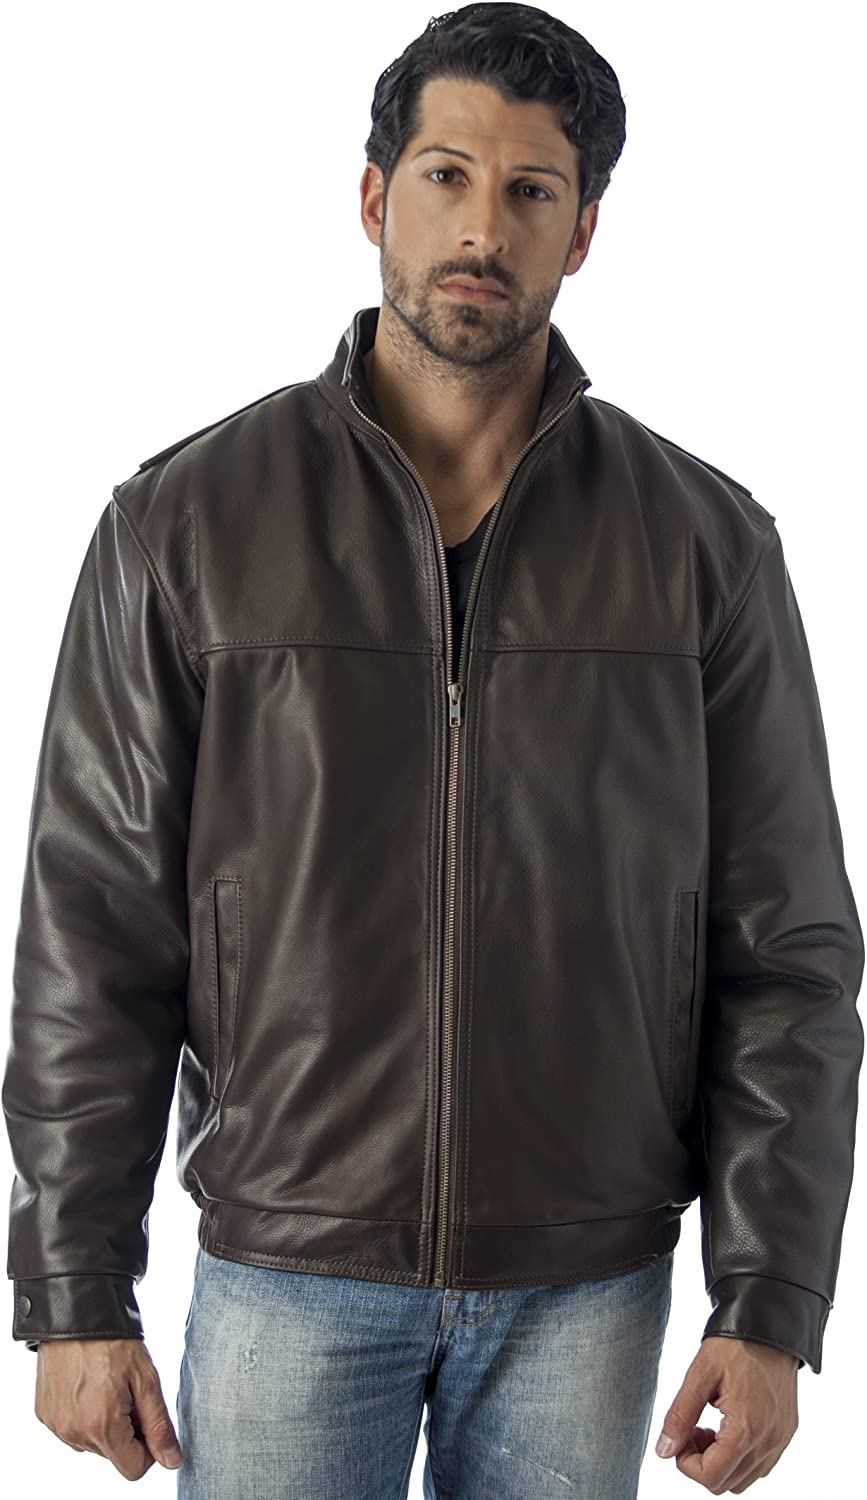 WINNERS LEATHER JACKET UNION MADE IN USA